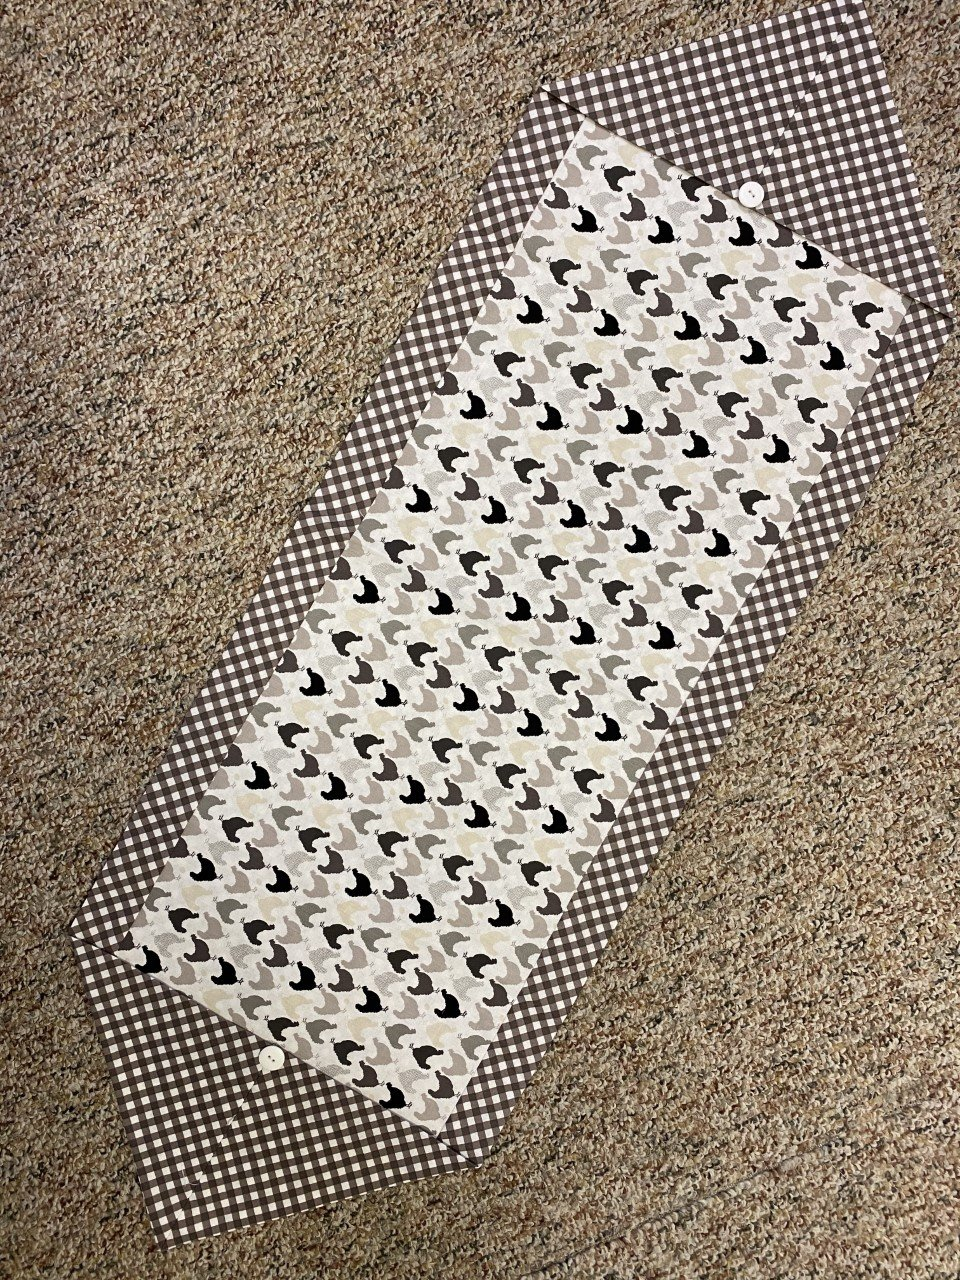 Chickens & Gray Check Table Runner 15 x 22